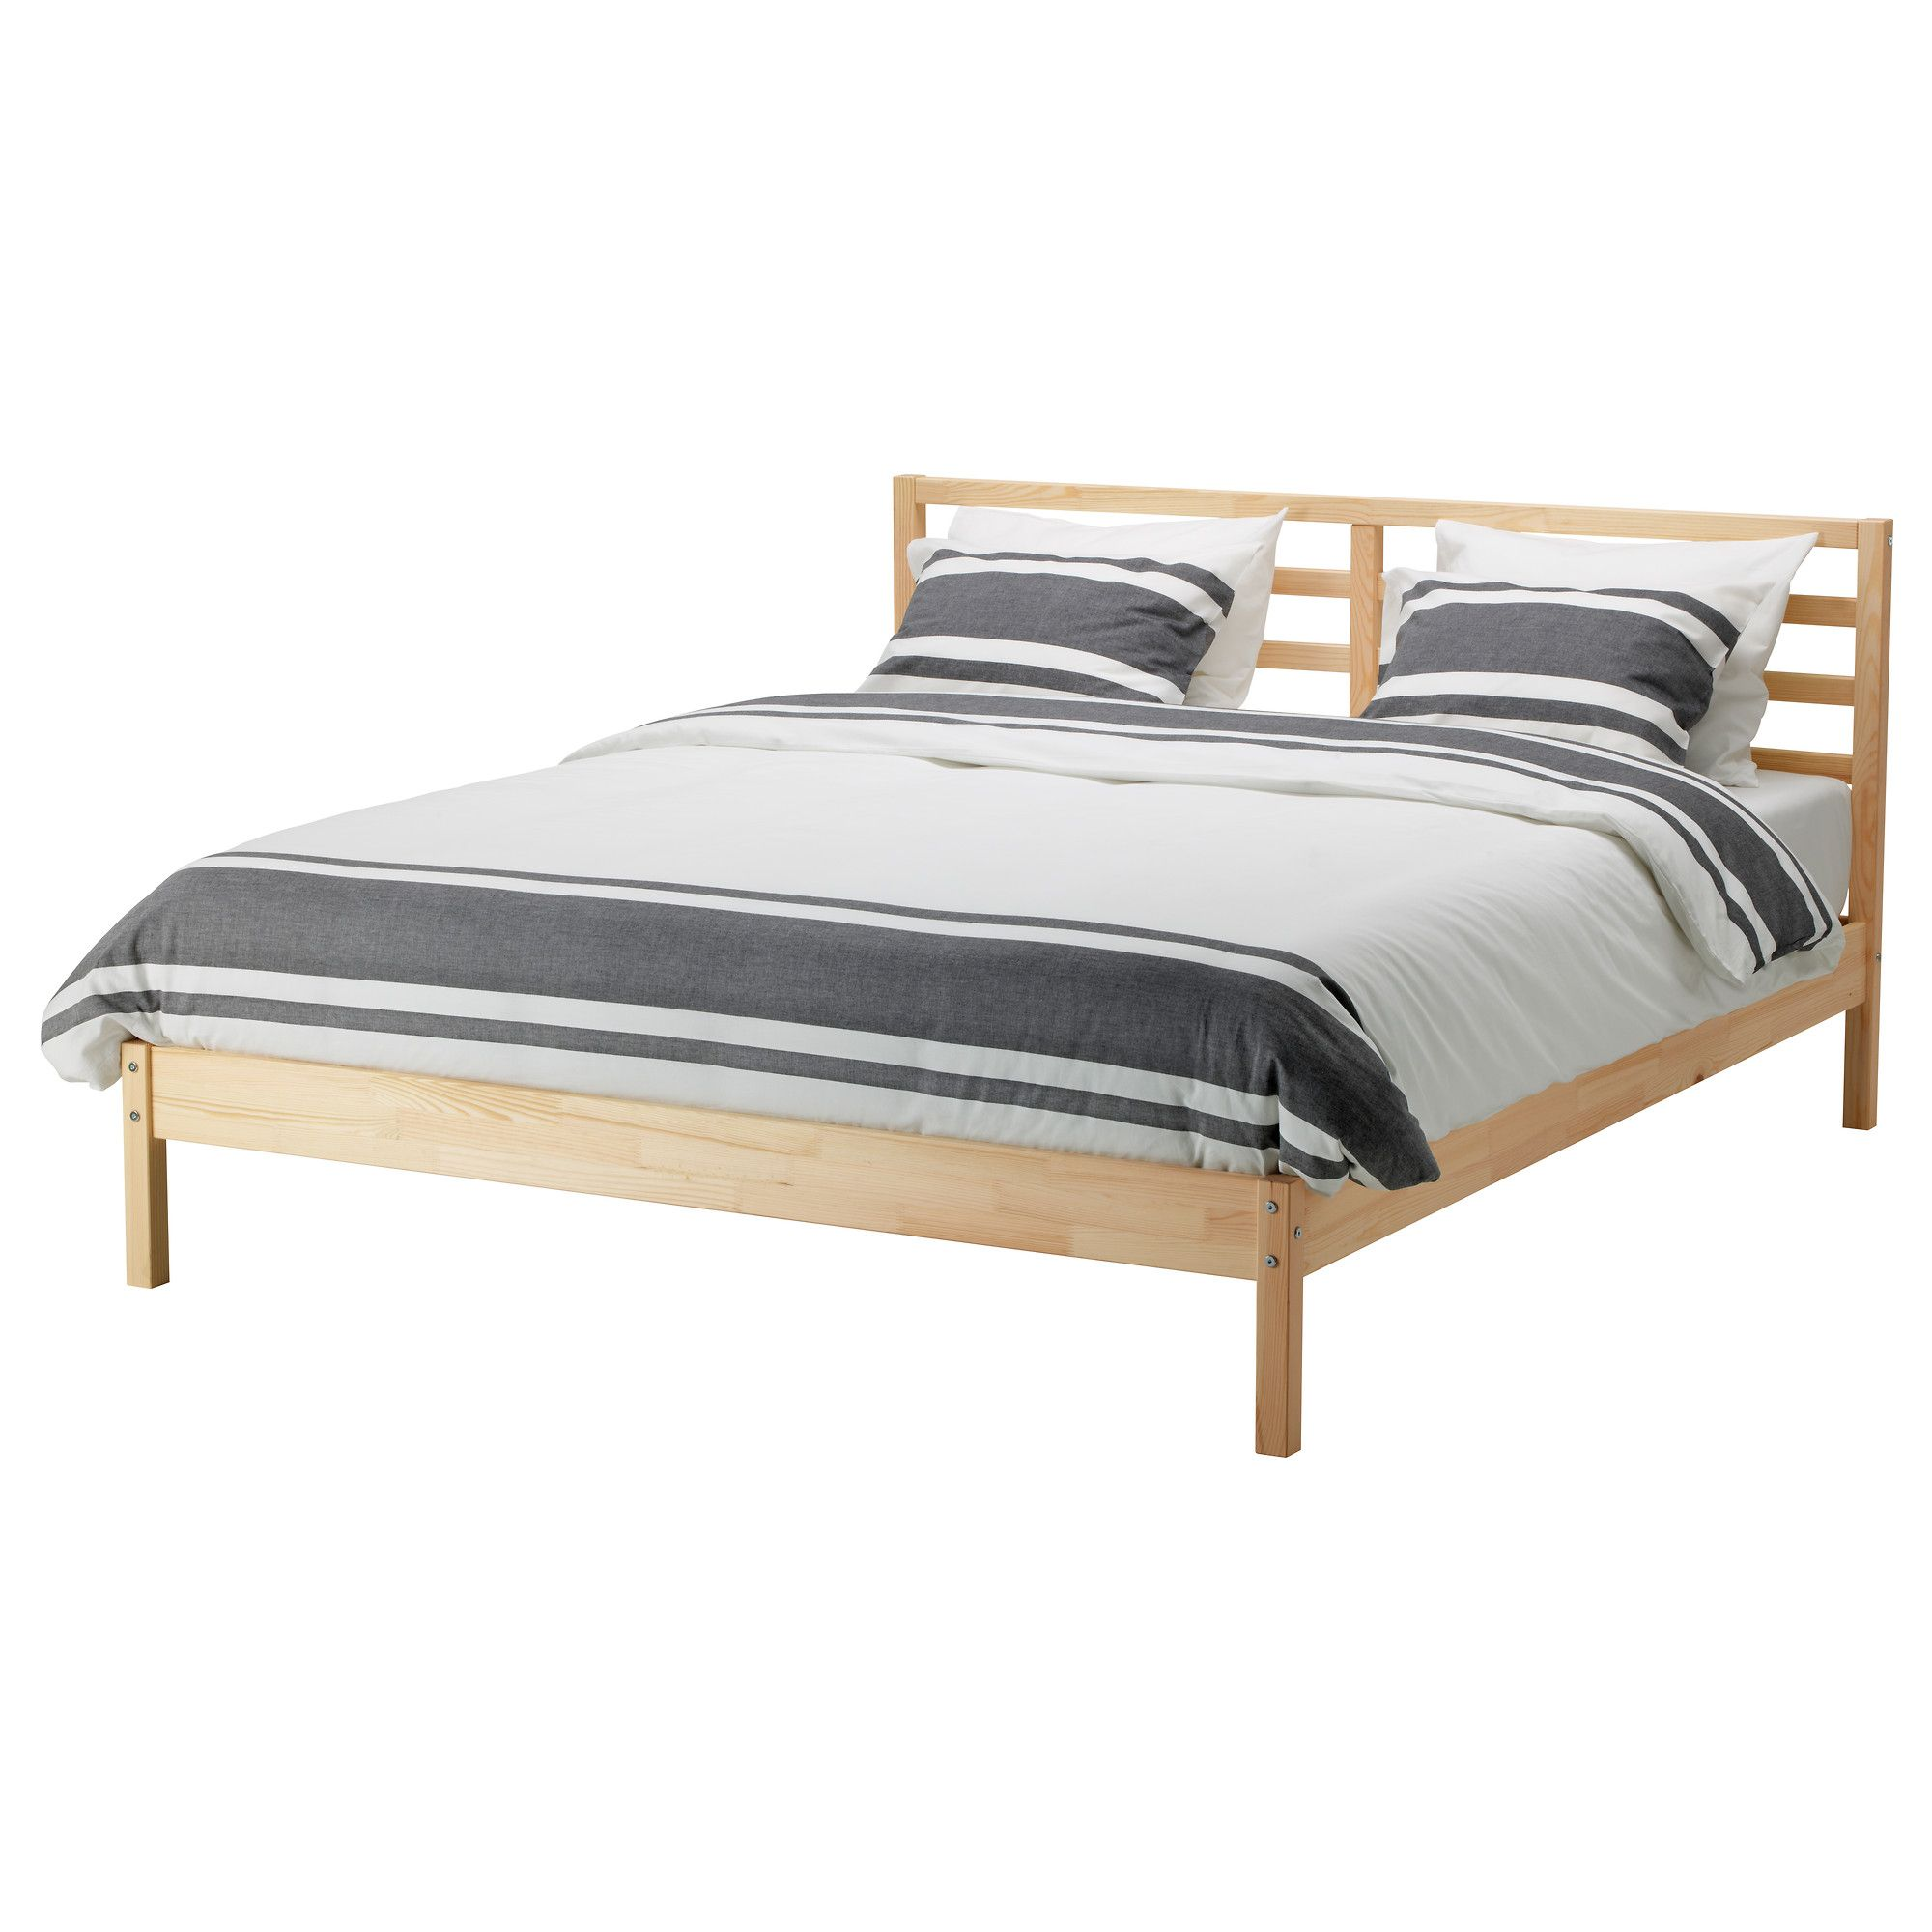 Ikea White Queen Bed ikea mandal queen bed frame headboard and dresser Tarva Bed Frame Pine